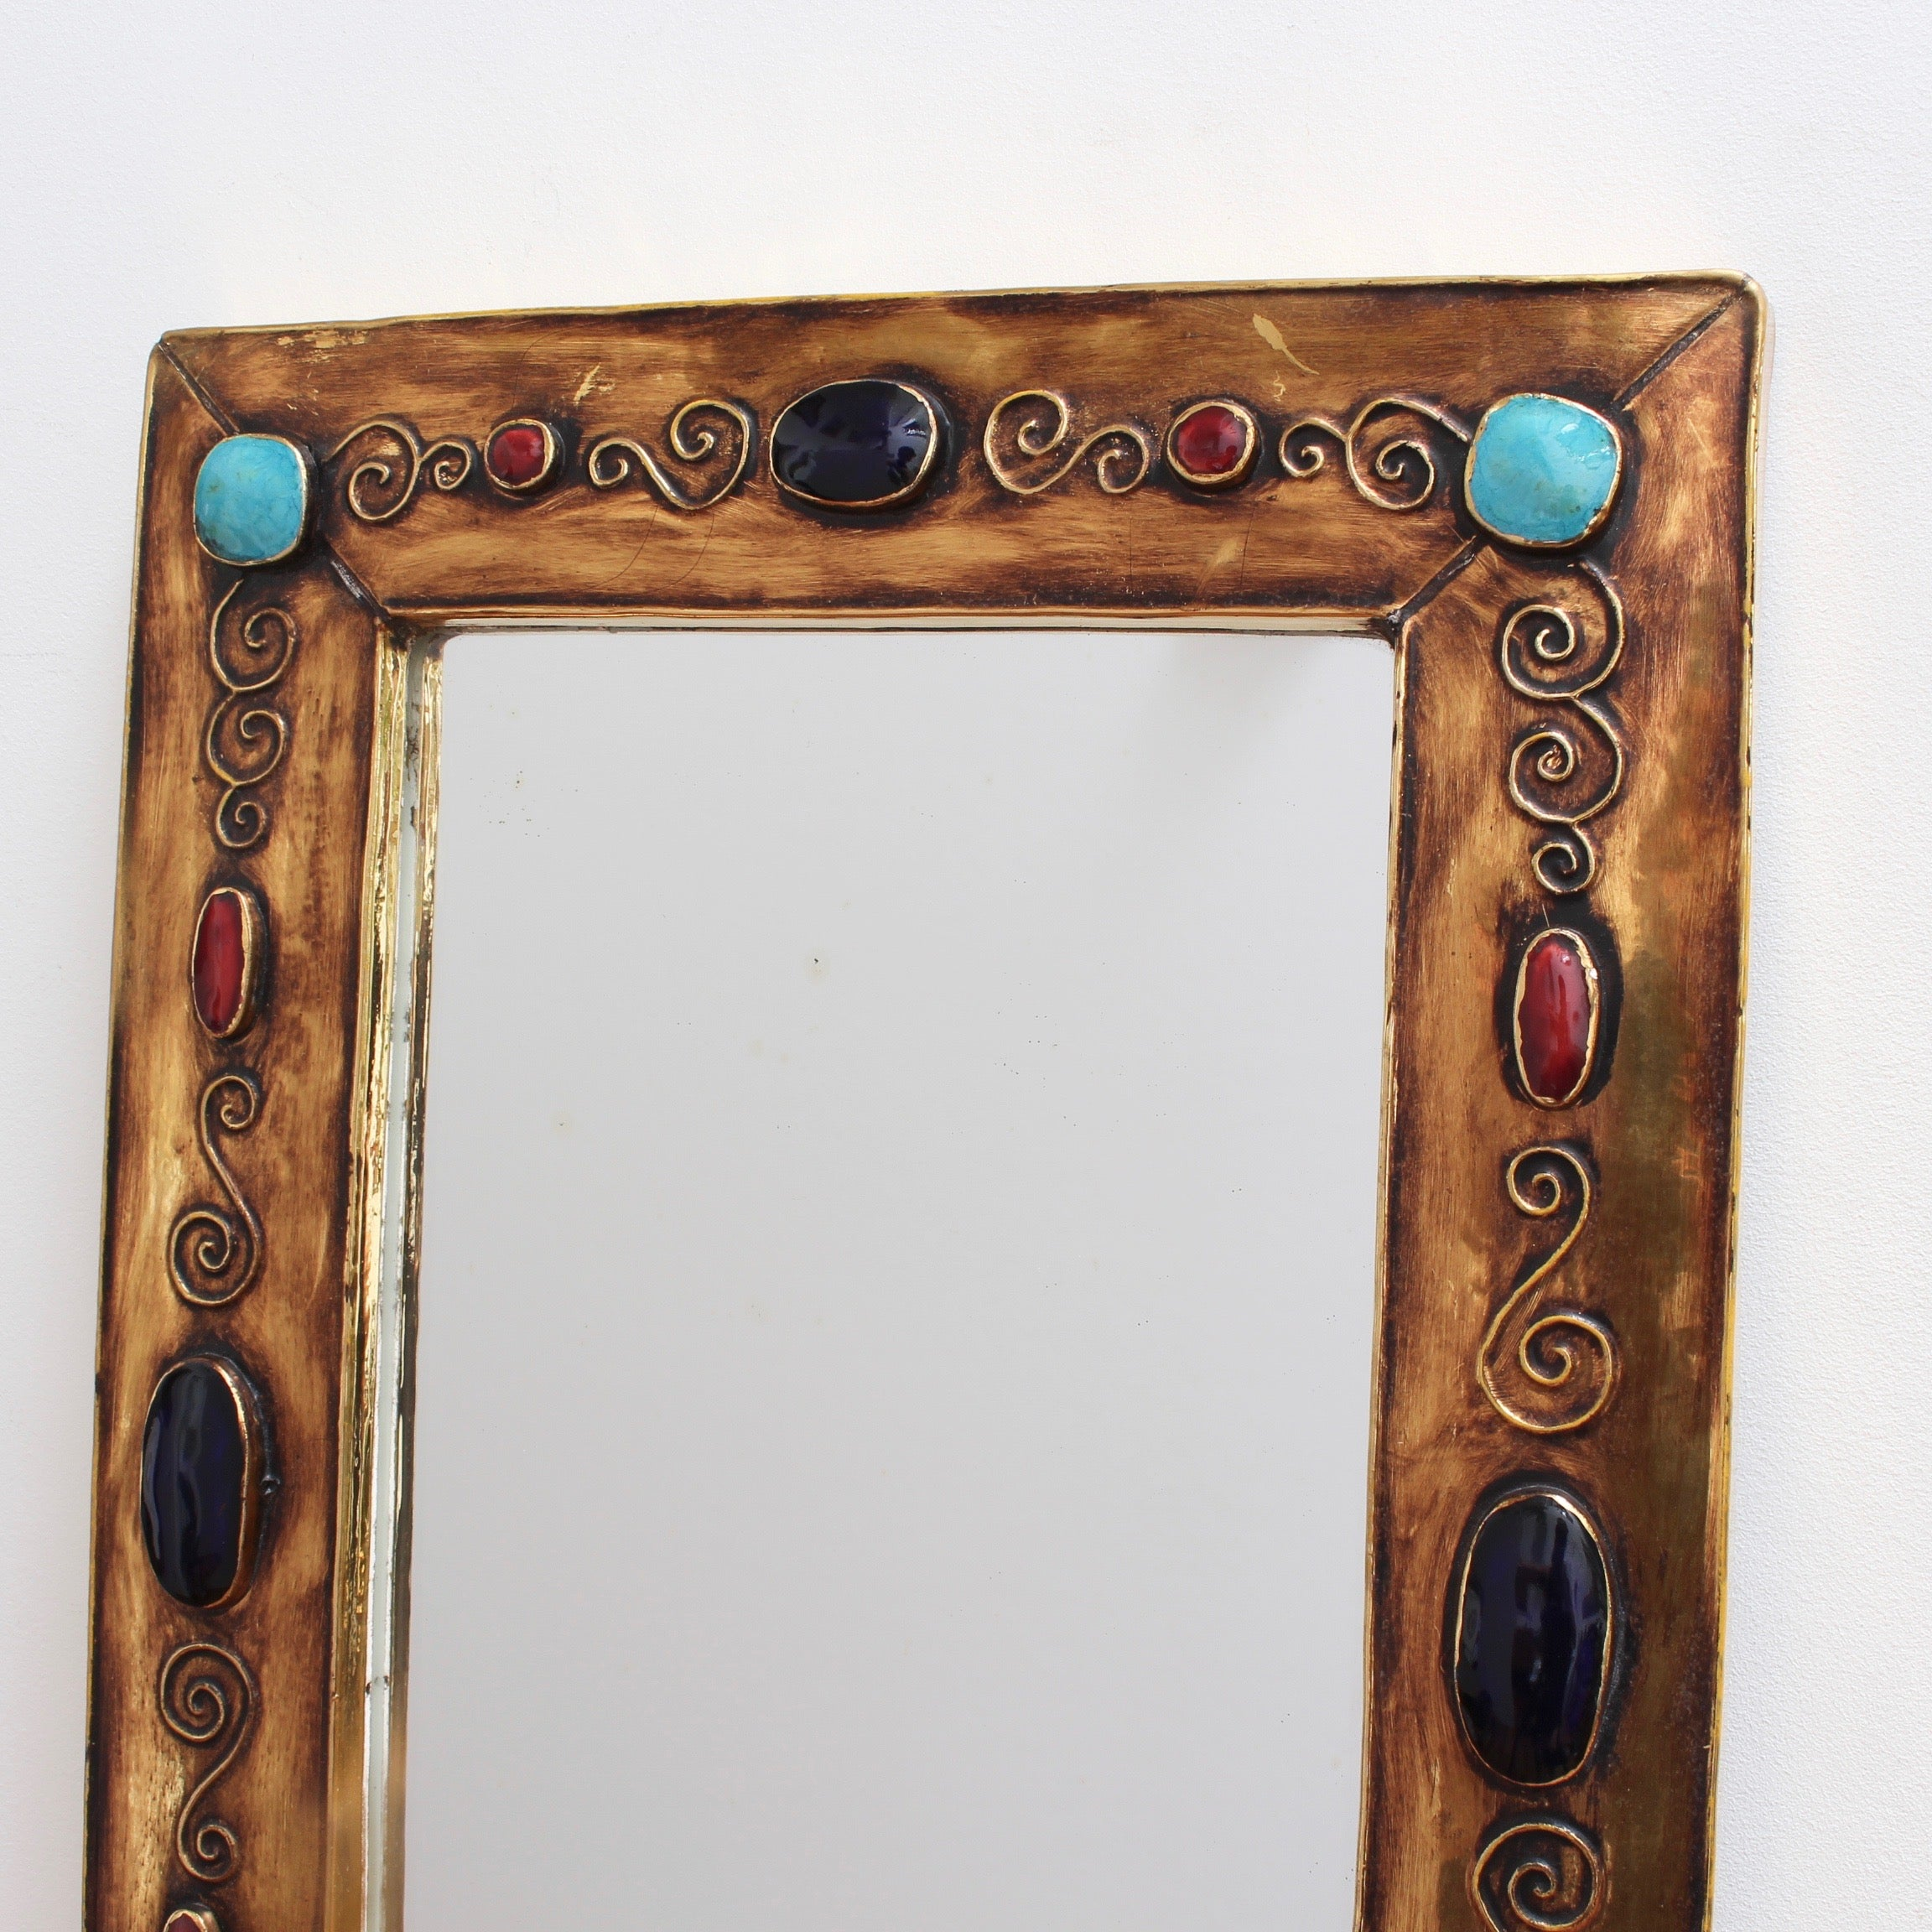 Ceramic Wall Mirror by François Lembo (circa 1960s - 70s) - Large